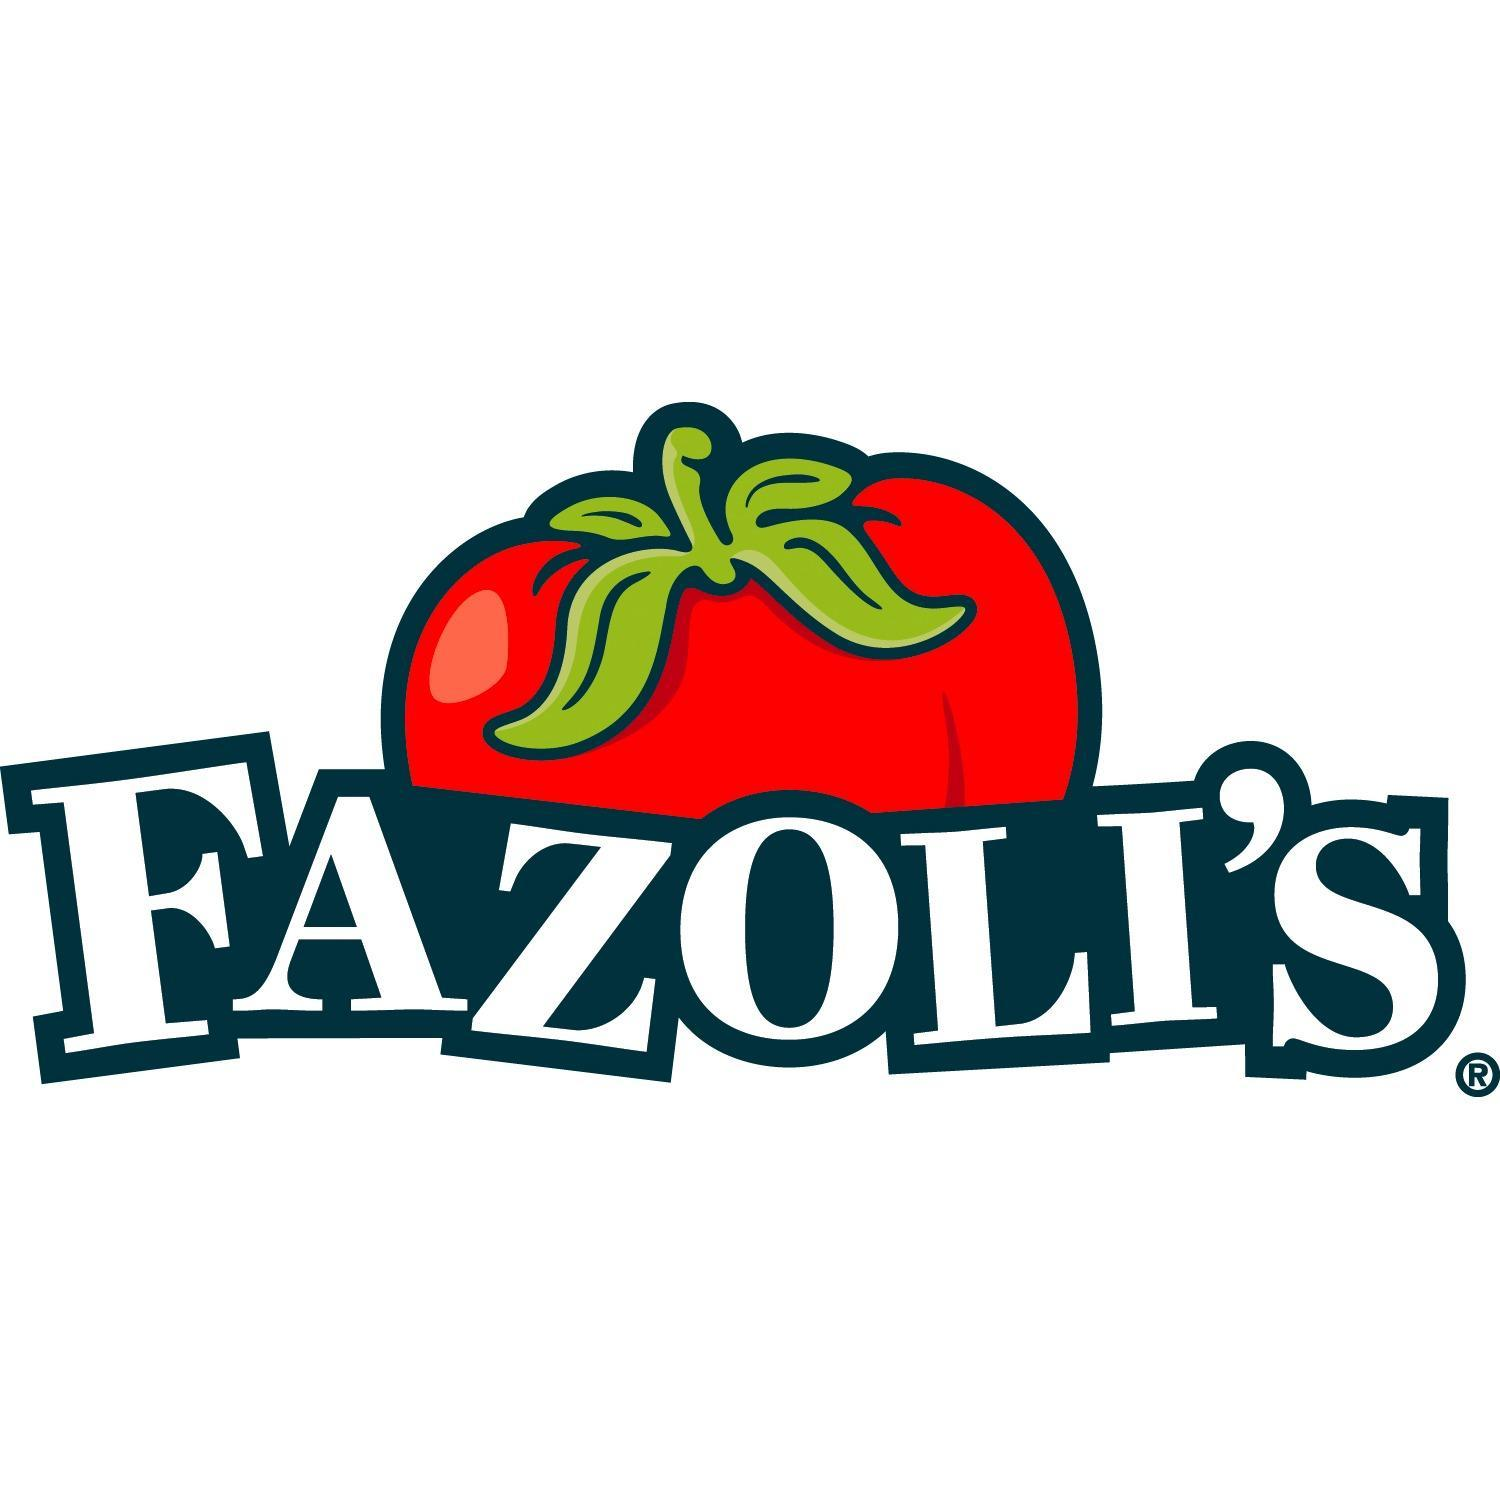 Fazoli's - Indianapolis, IN 46260 - (317)876-1912 | ShowMeLocal.com